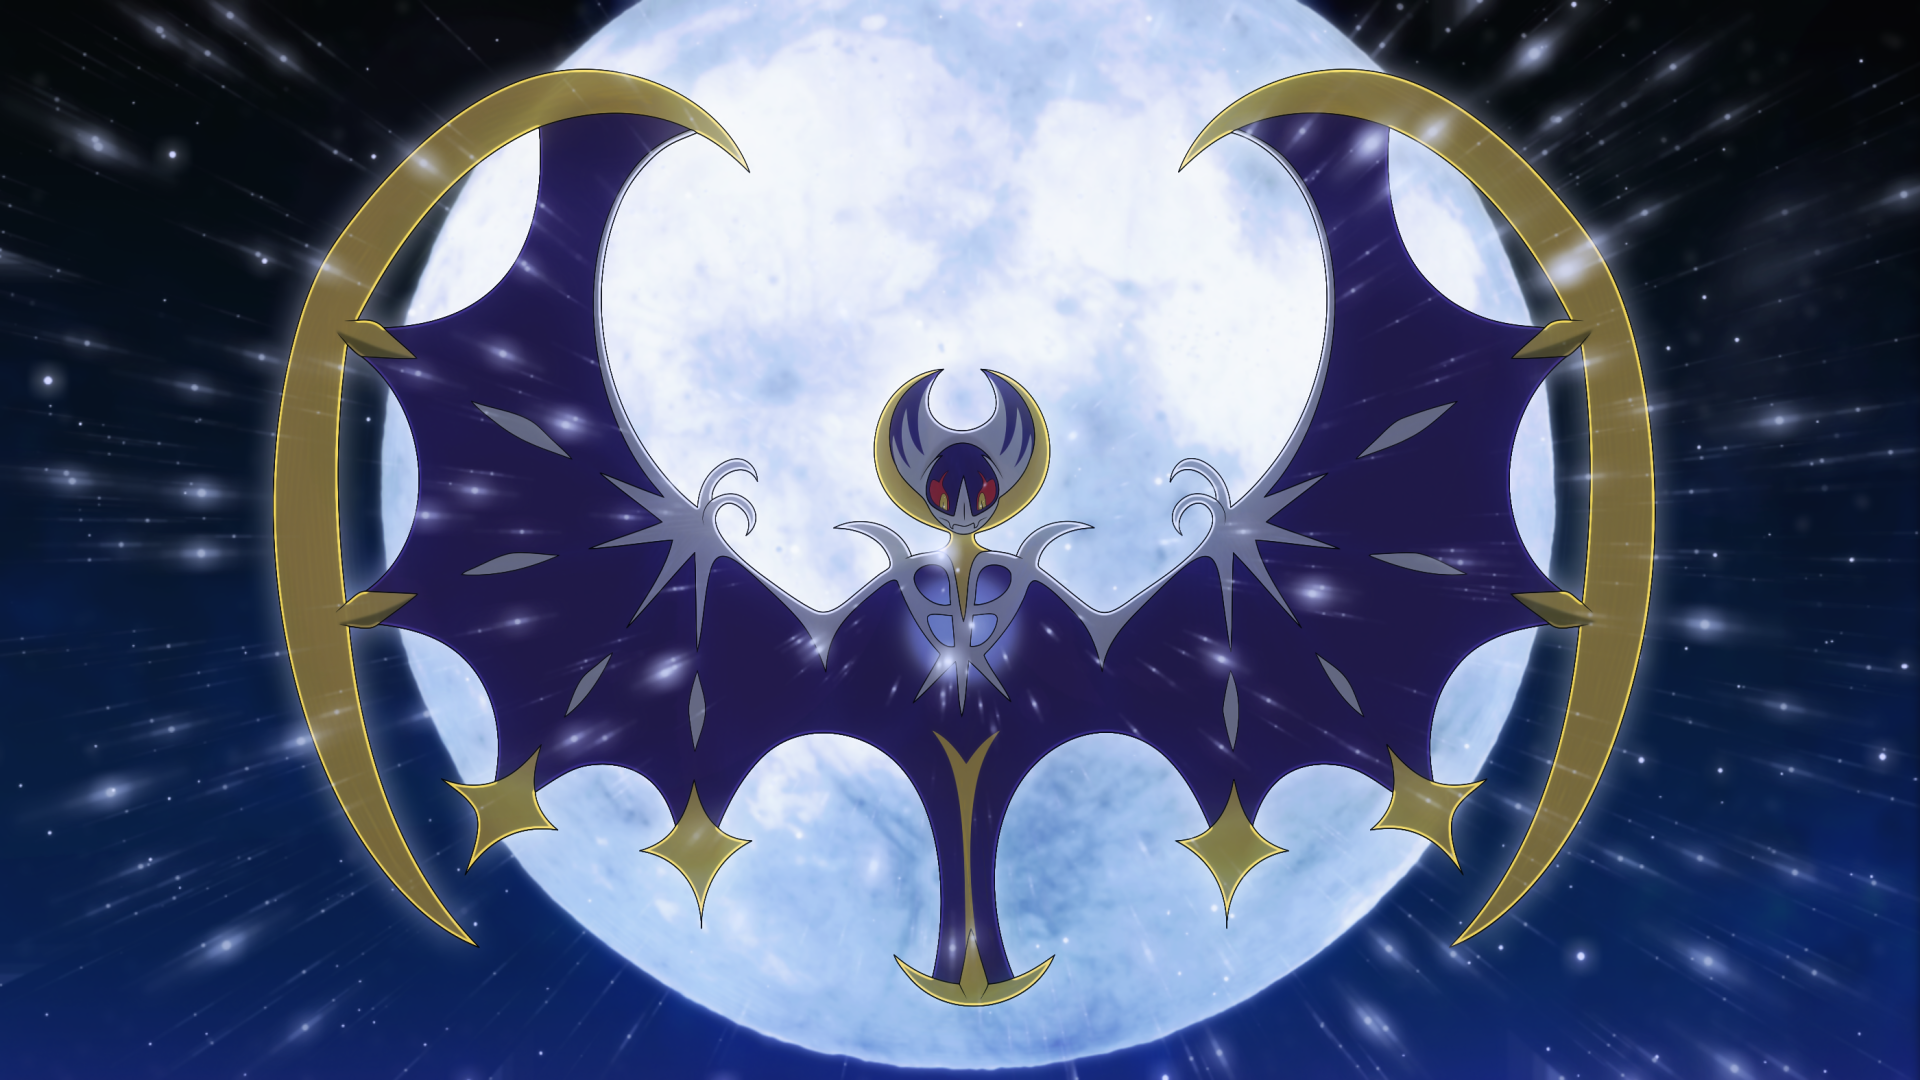 Video Game - Pokémon Sun and Moon  Lunala (Pokémon) Pokémon Pokémon Moon Wallpaper